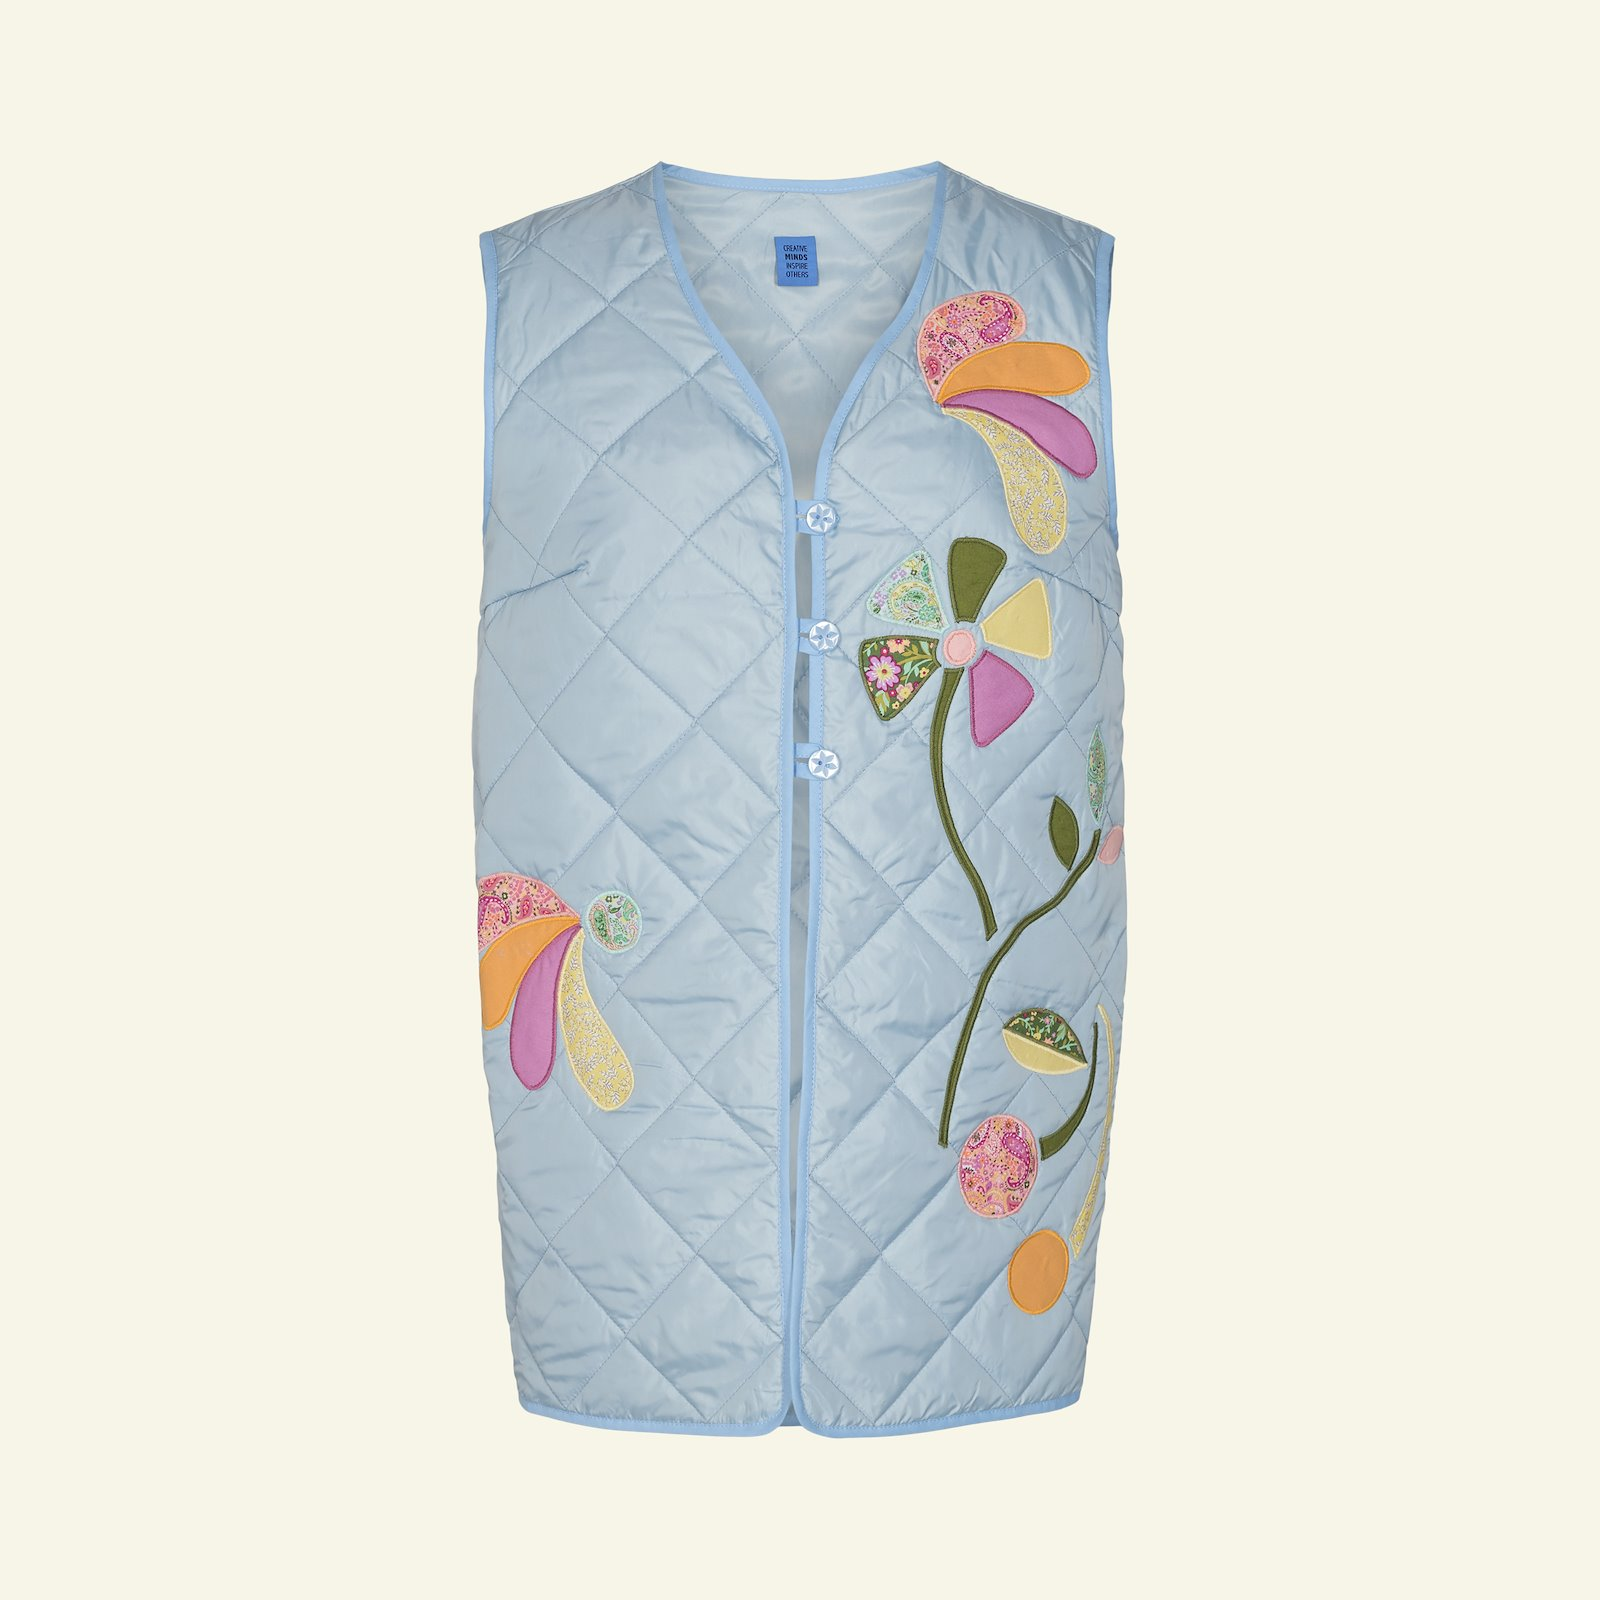 Quilted jacket and waistcoat, 34/6 p24047_920225_66019_33224_sskit